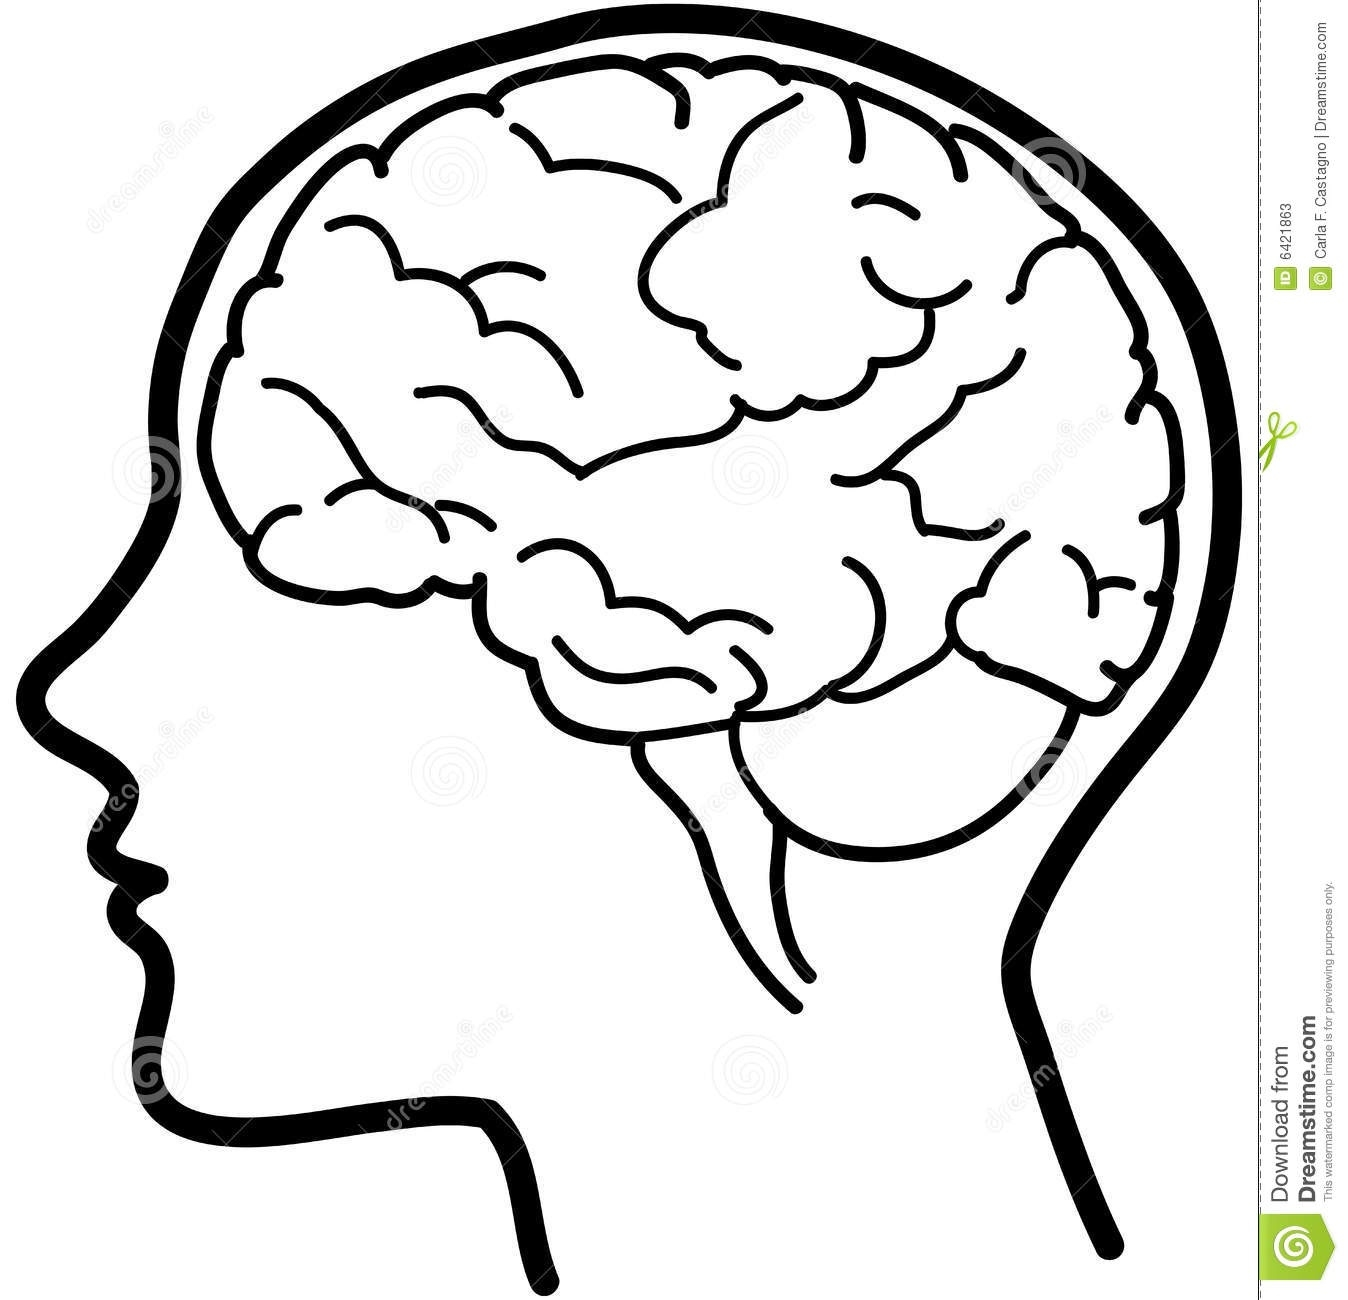 Brain clipart black and white. Free download best